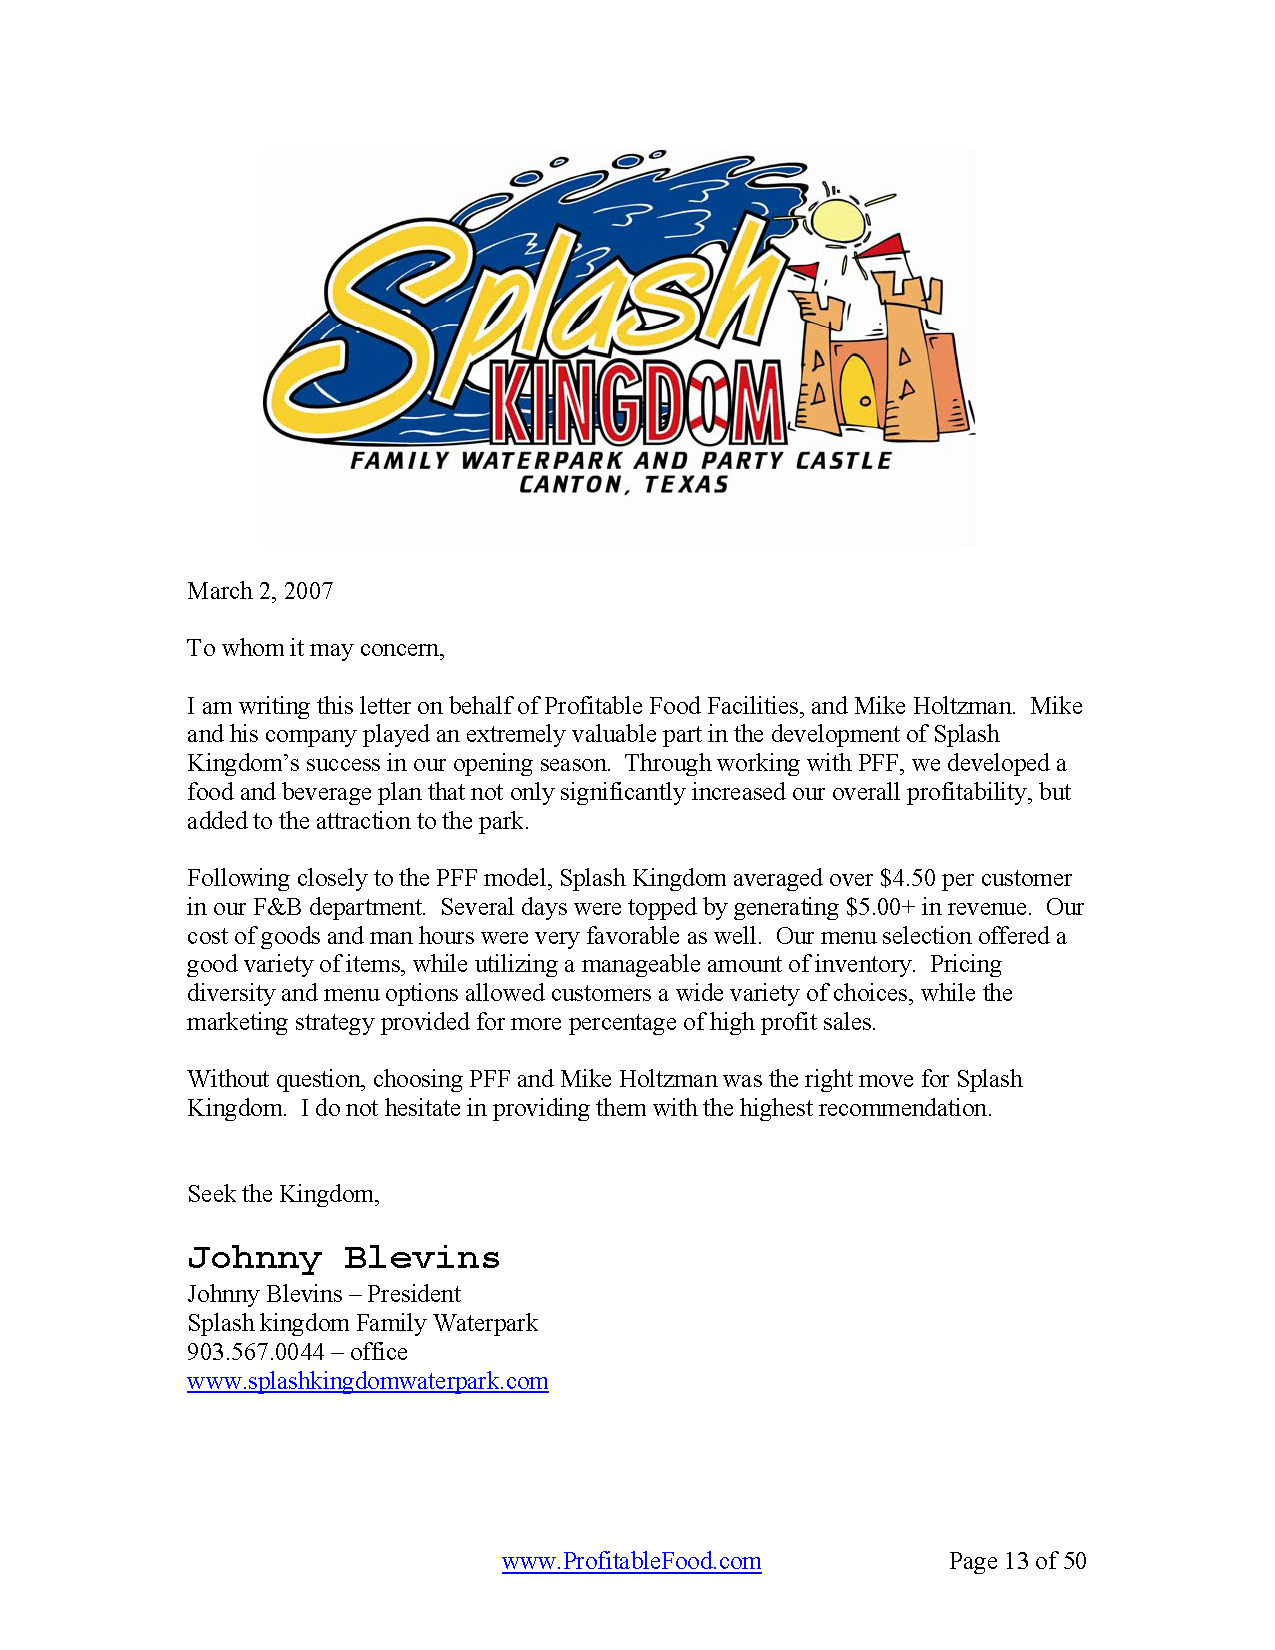 Splash Kingdom Profitable Food Facilities Recommendation Letter